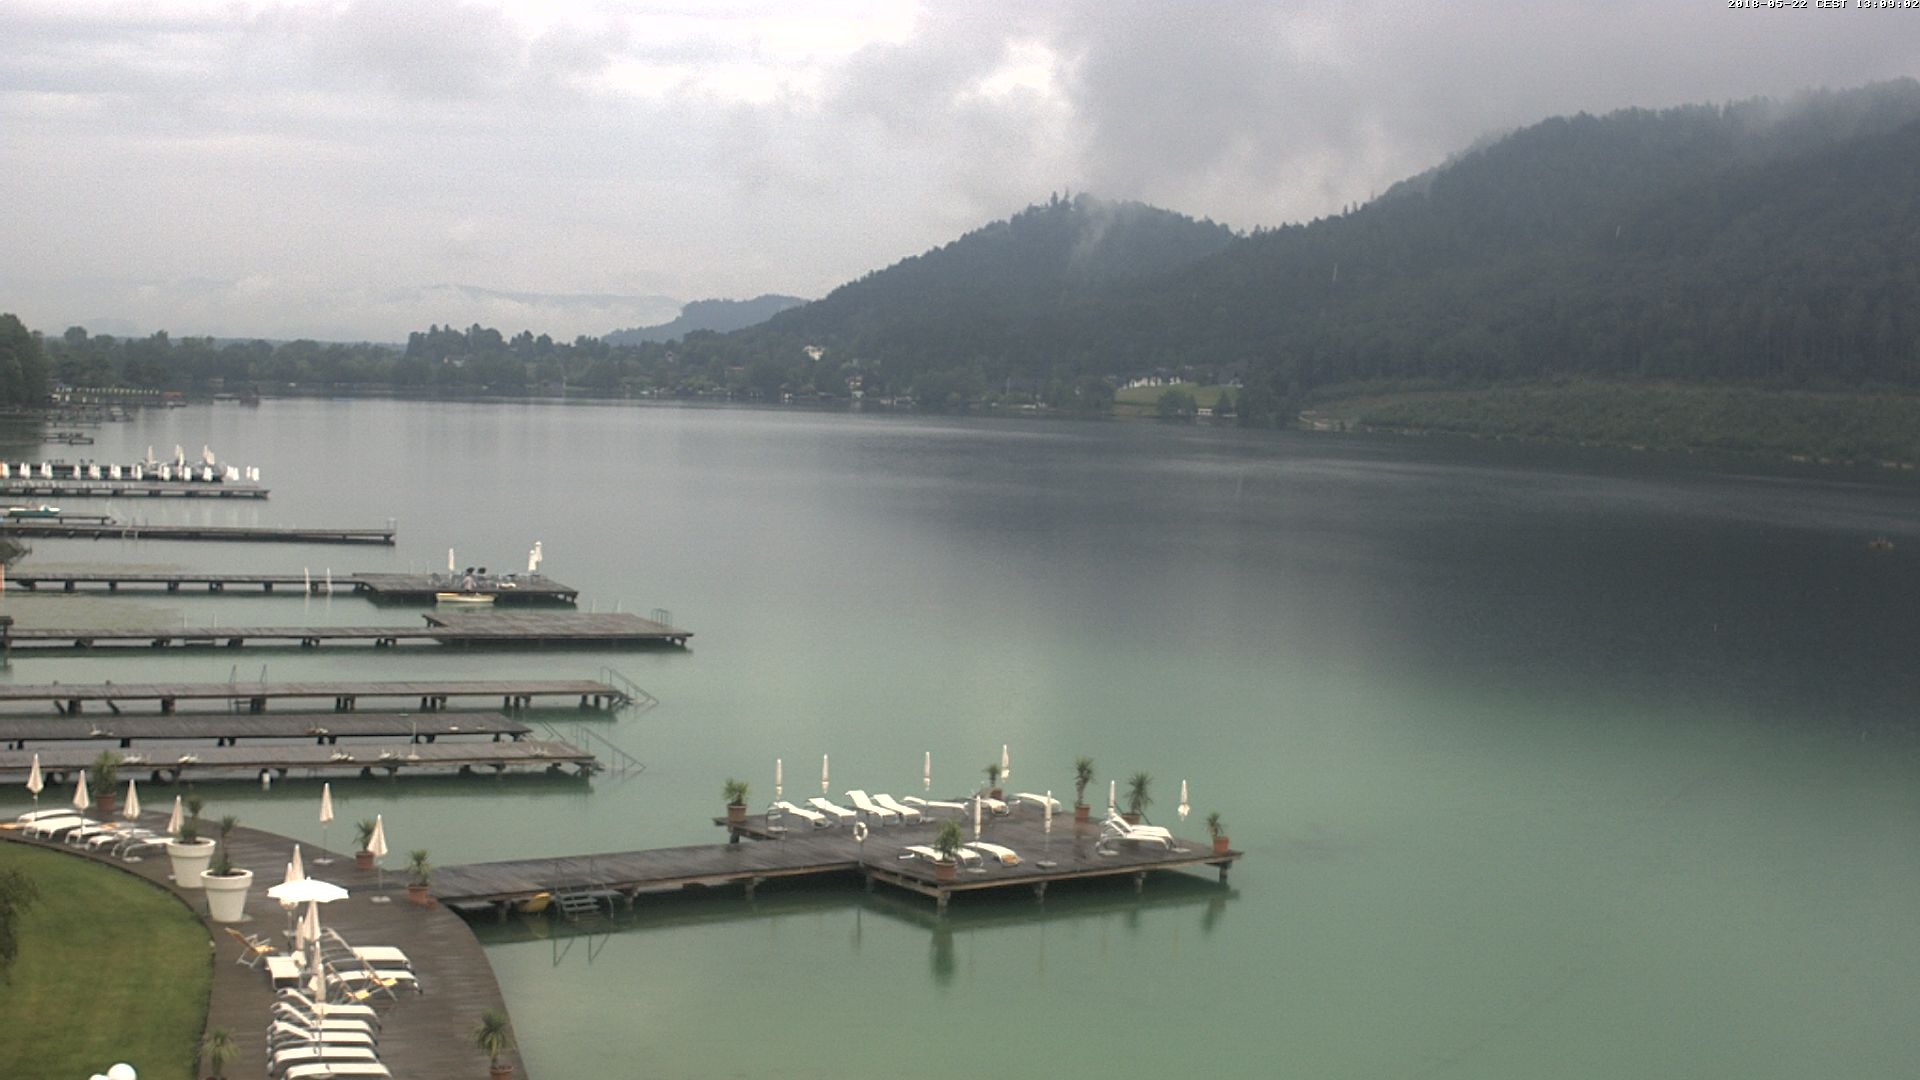 http://www.klopeinersee-webcam.at/webcamfiles/webcam